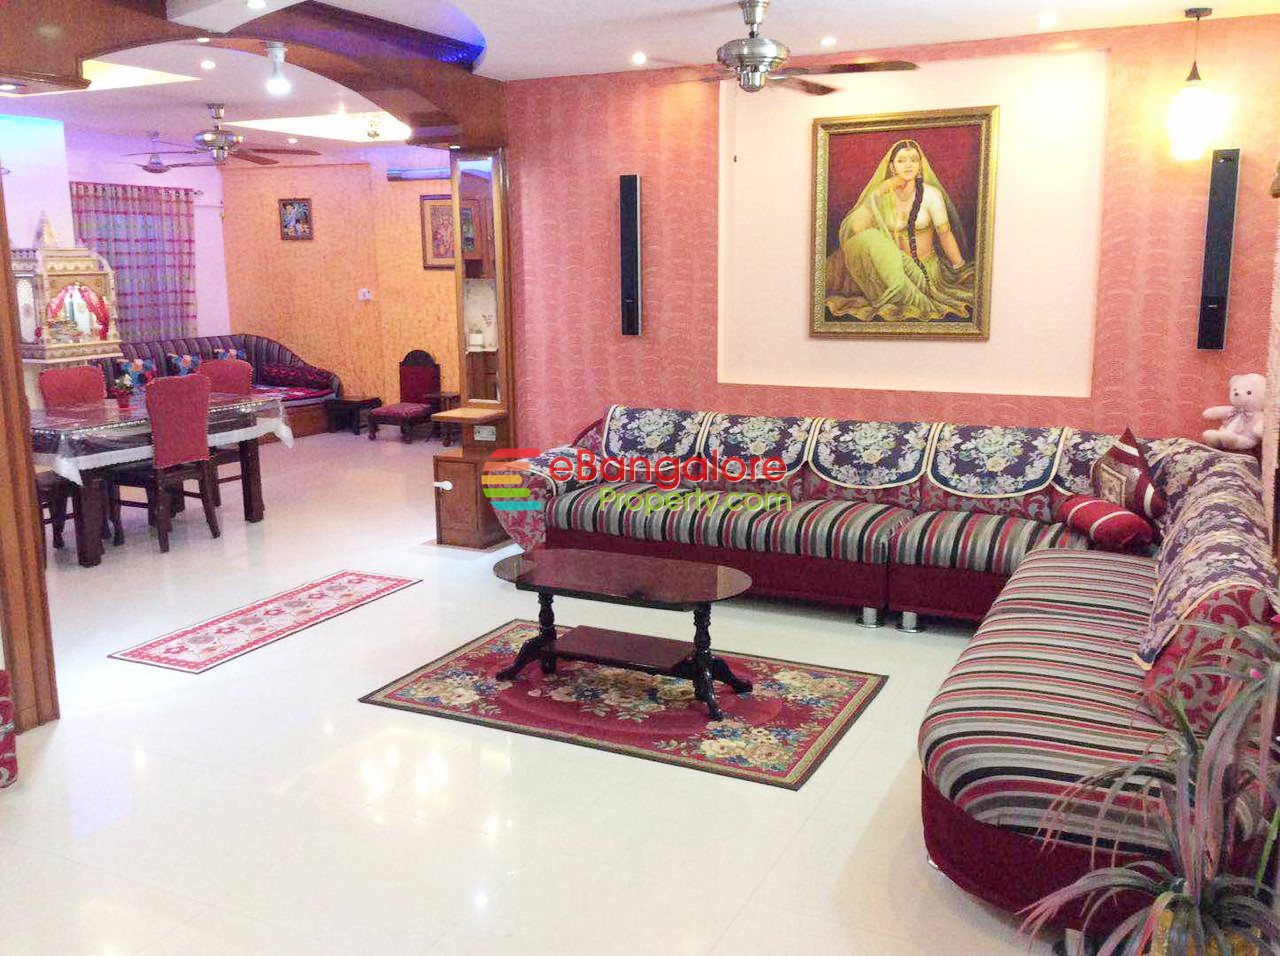 JP Nagar 6th Phase – 3BHK Fully Furnished Apartment For Sale – With OC/CC Amenities